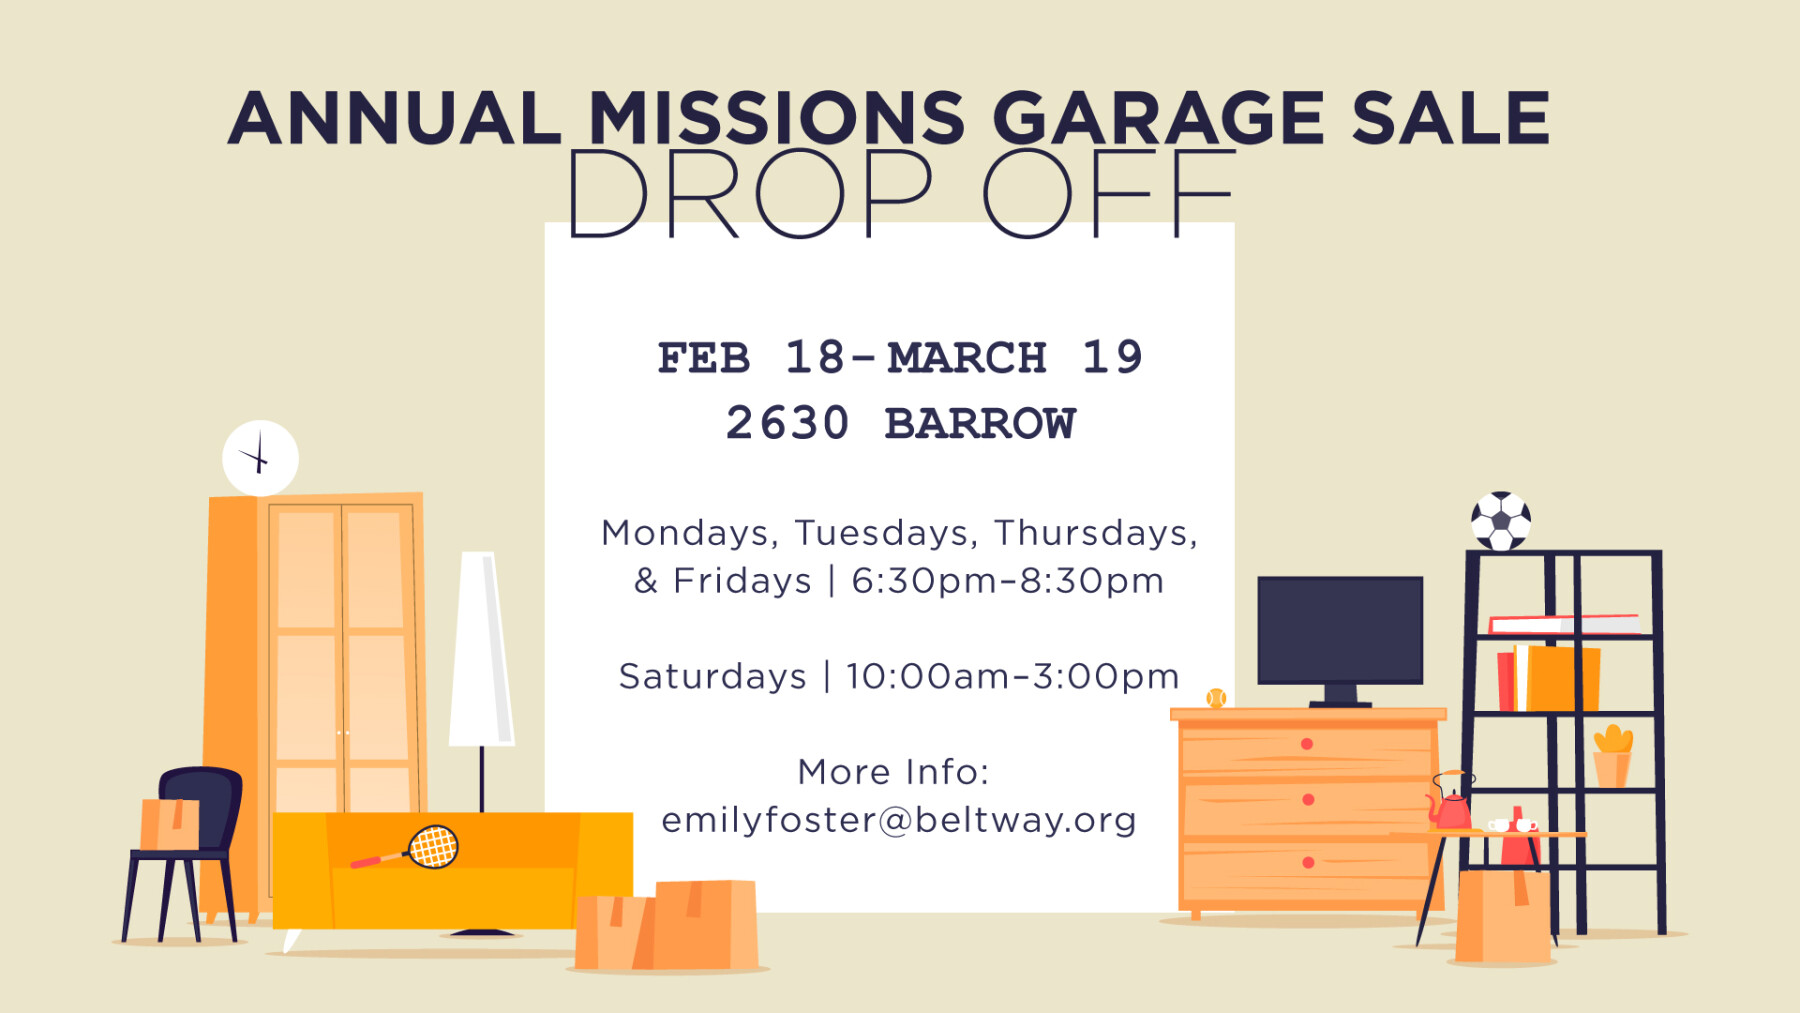 Annual Missions Garage Sale Drop Off